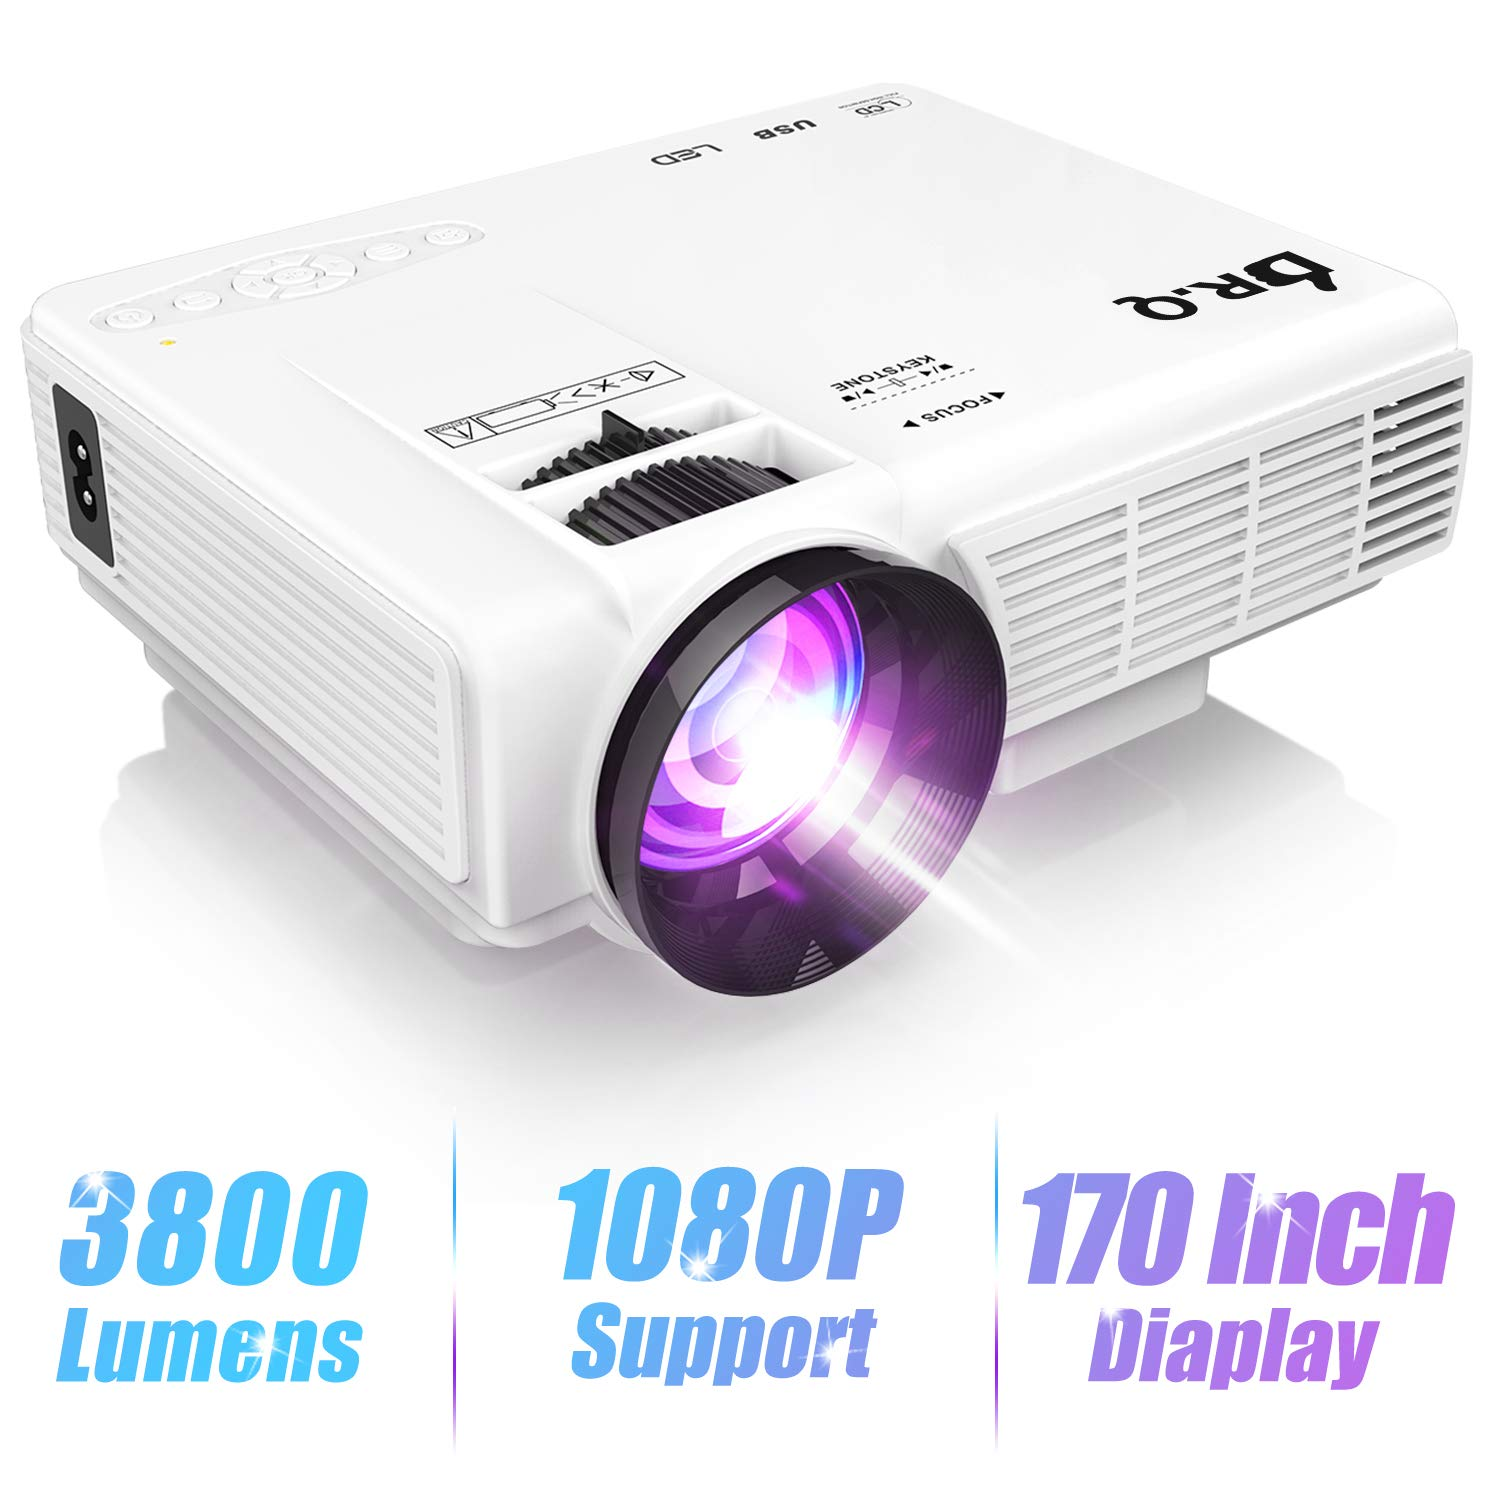 "DR.Q HI-04 Projector 1080P Full HD and 170"" Display Supported, 3800 Lumen Video Projector"